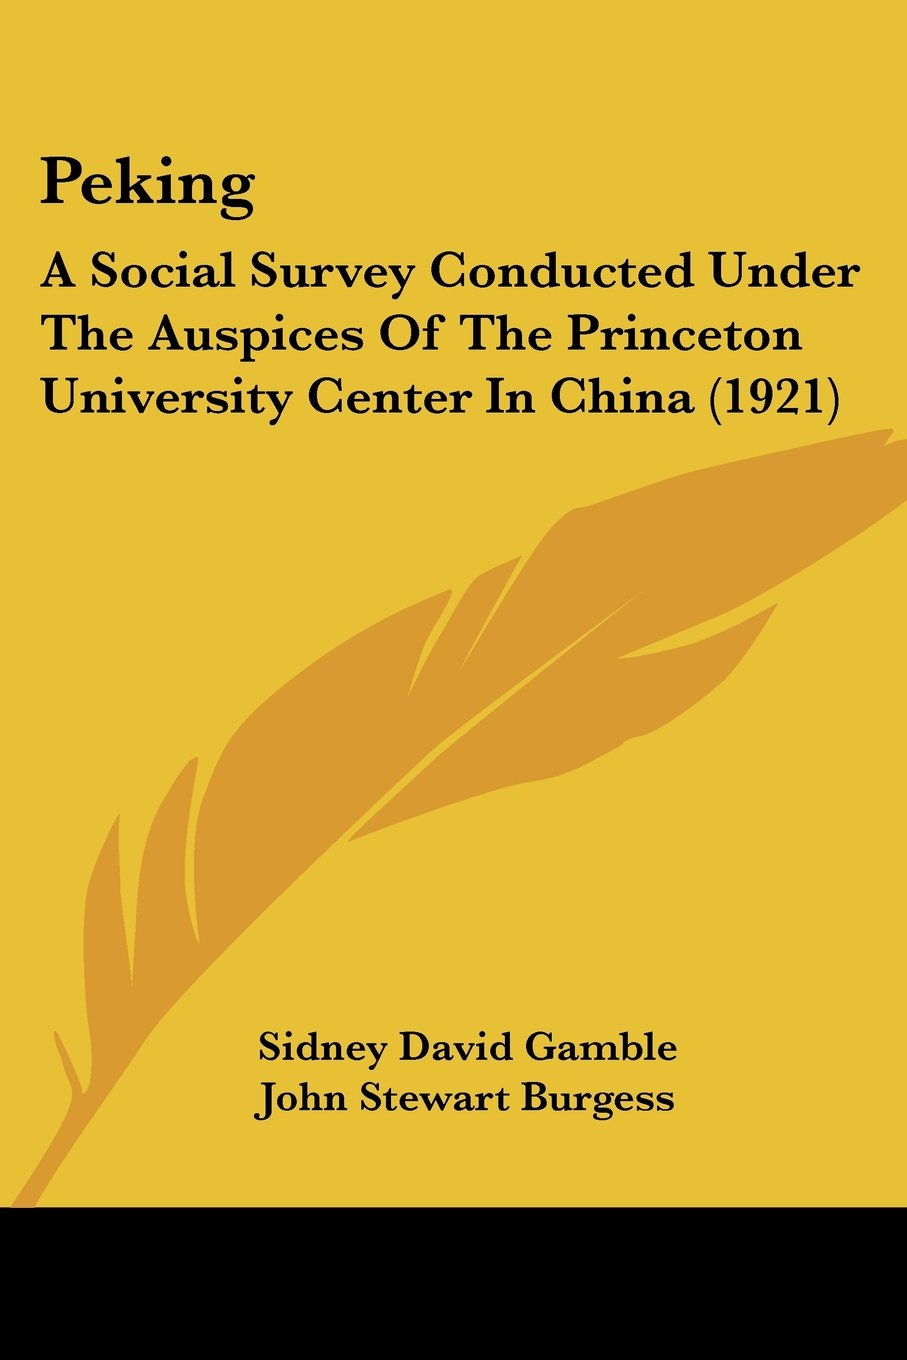 Download Peking: A Social Survey Conducted Under The Auspices Of The Princeton University Center In China (1921) PDF